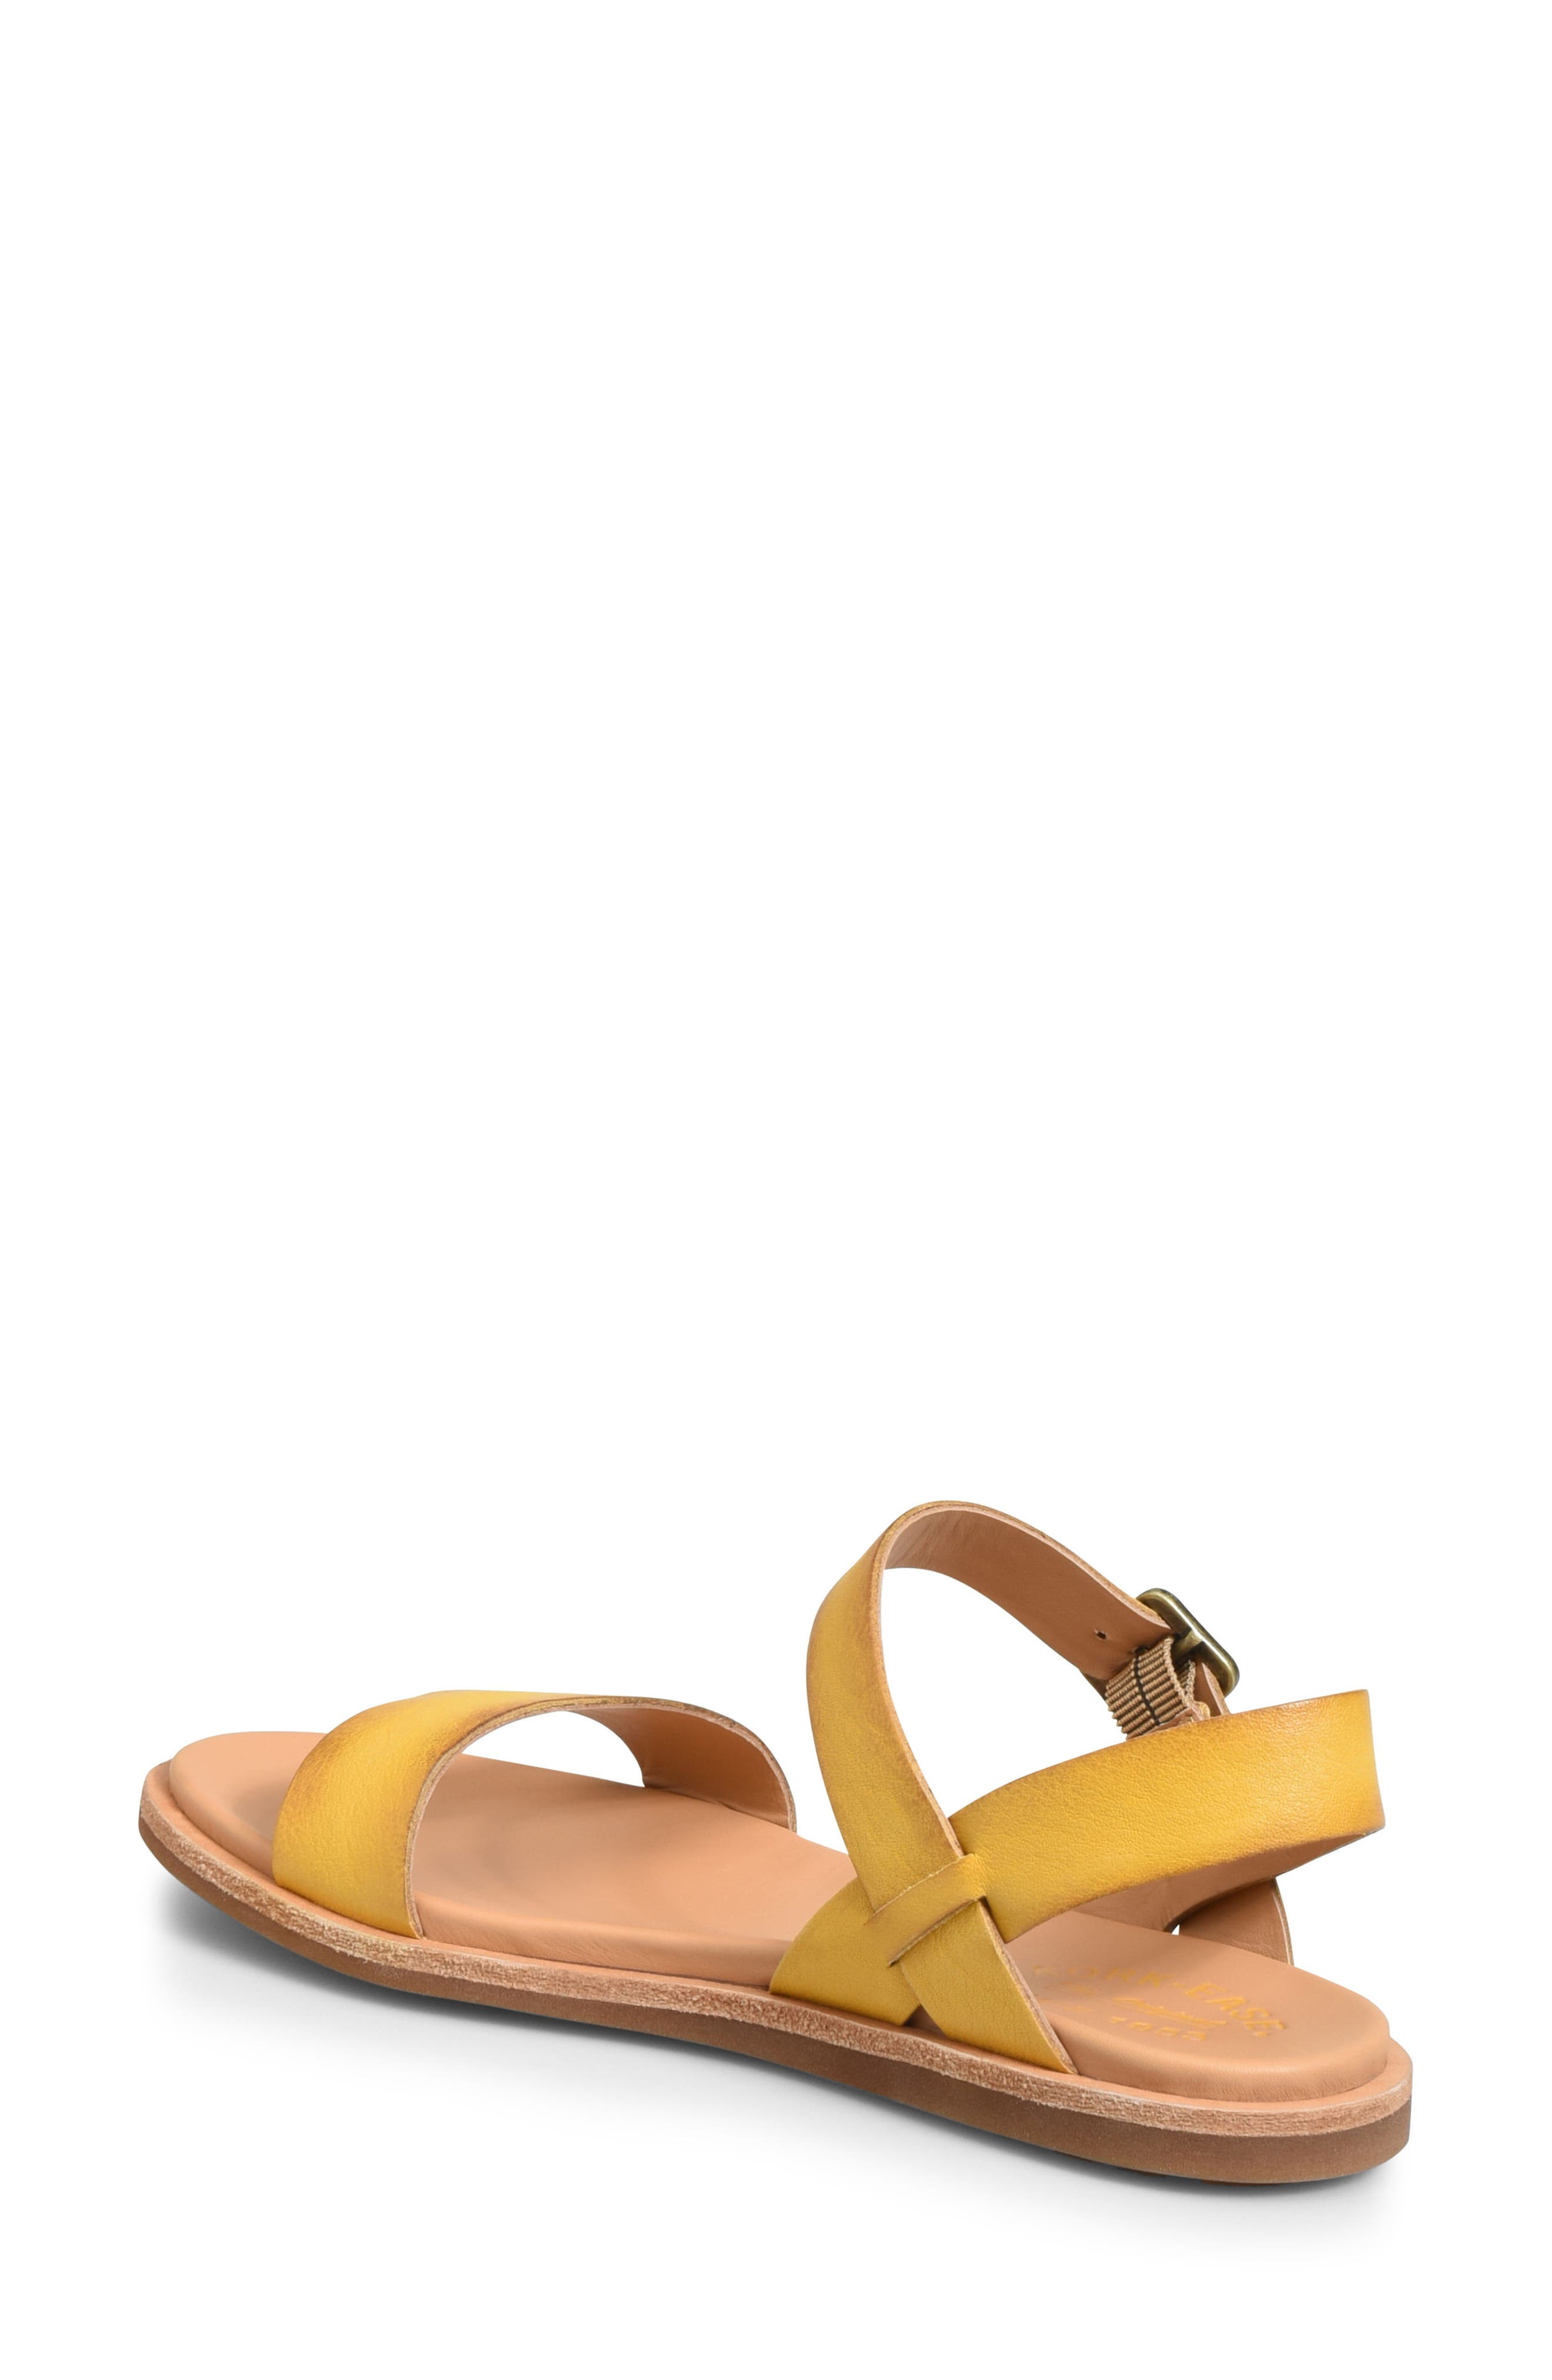 Yucca Sandal,                             Alternate thumbnail 2, color,                             Yellow Leather